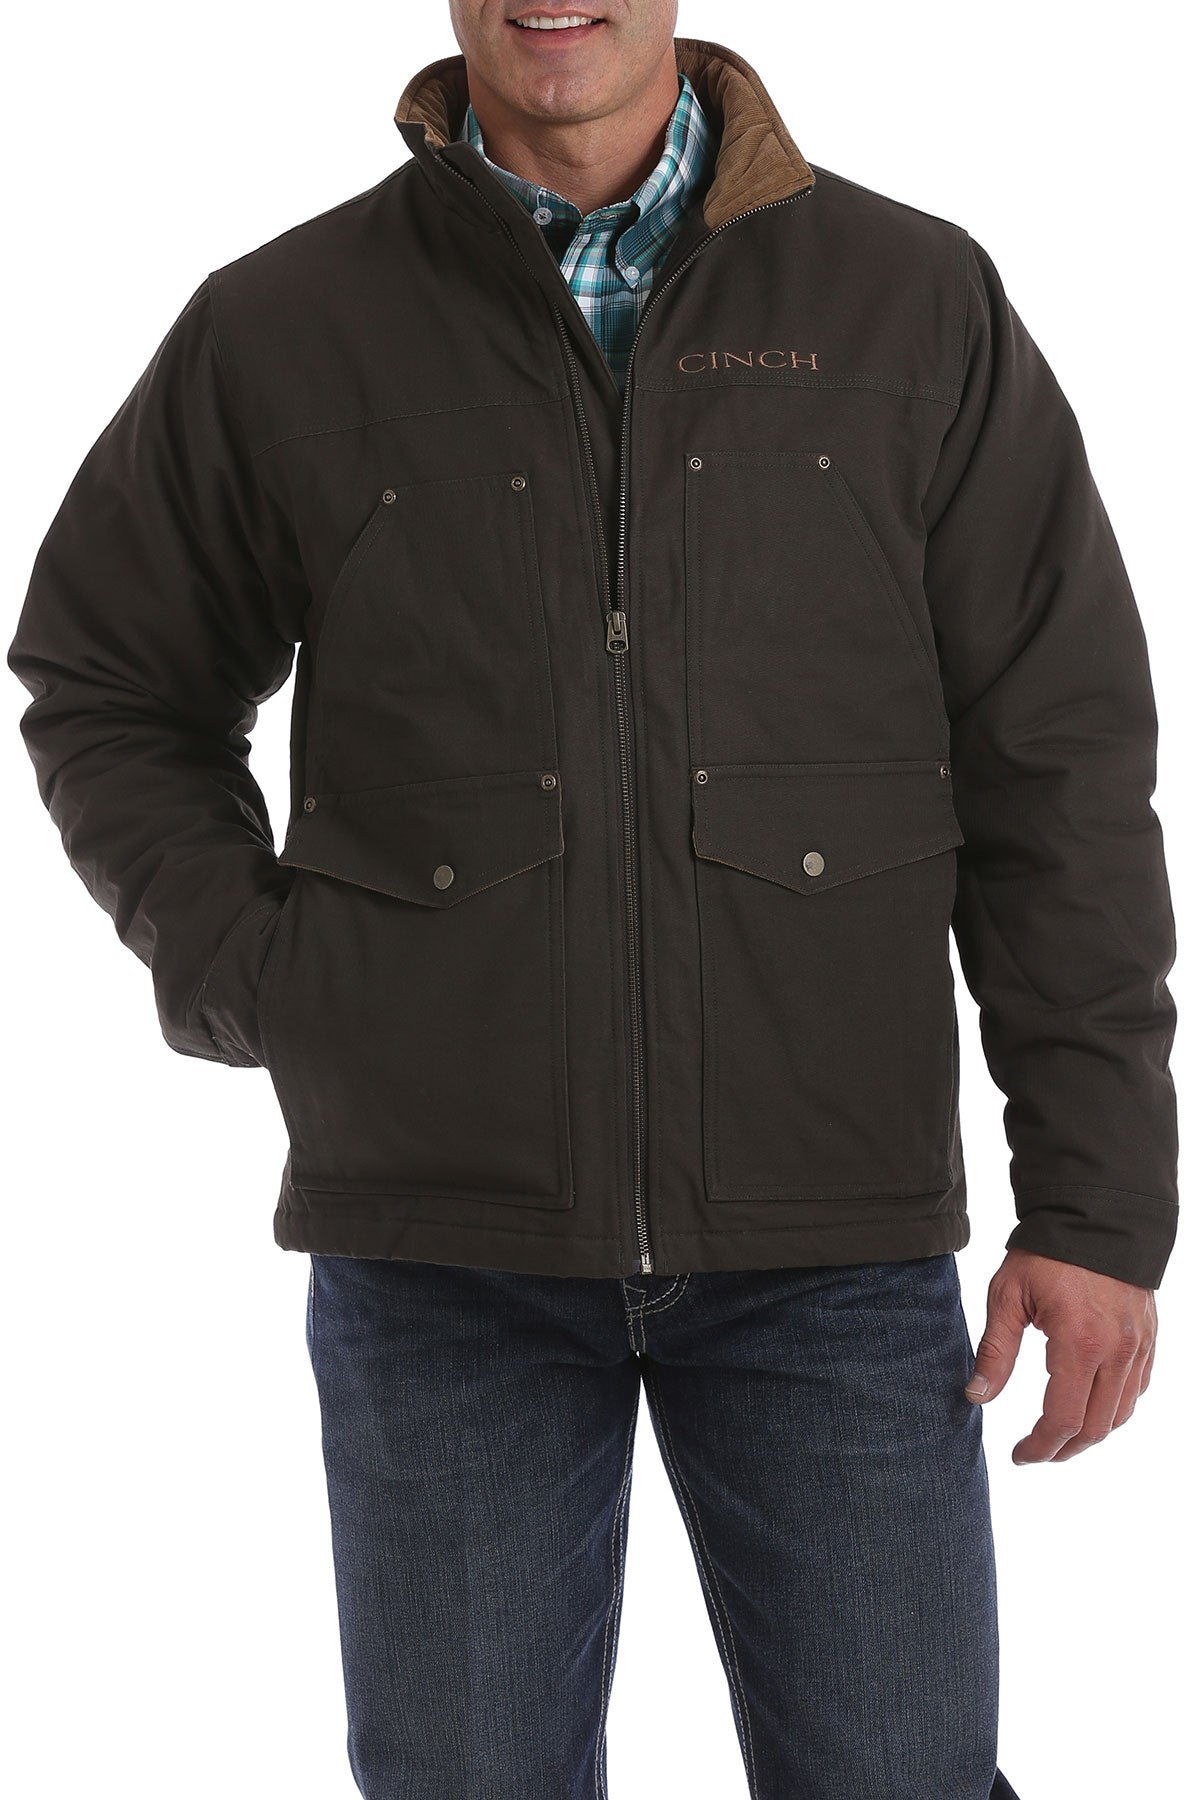 'Cinch' MWJ1068003 - Concealed Carry Contender Jacket - Brown